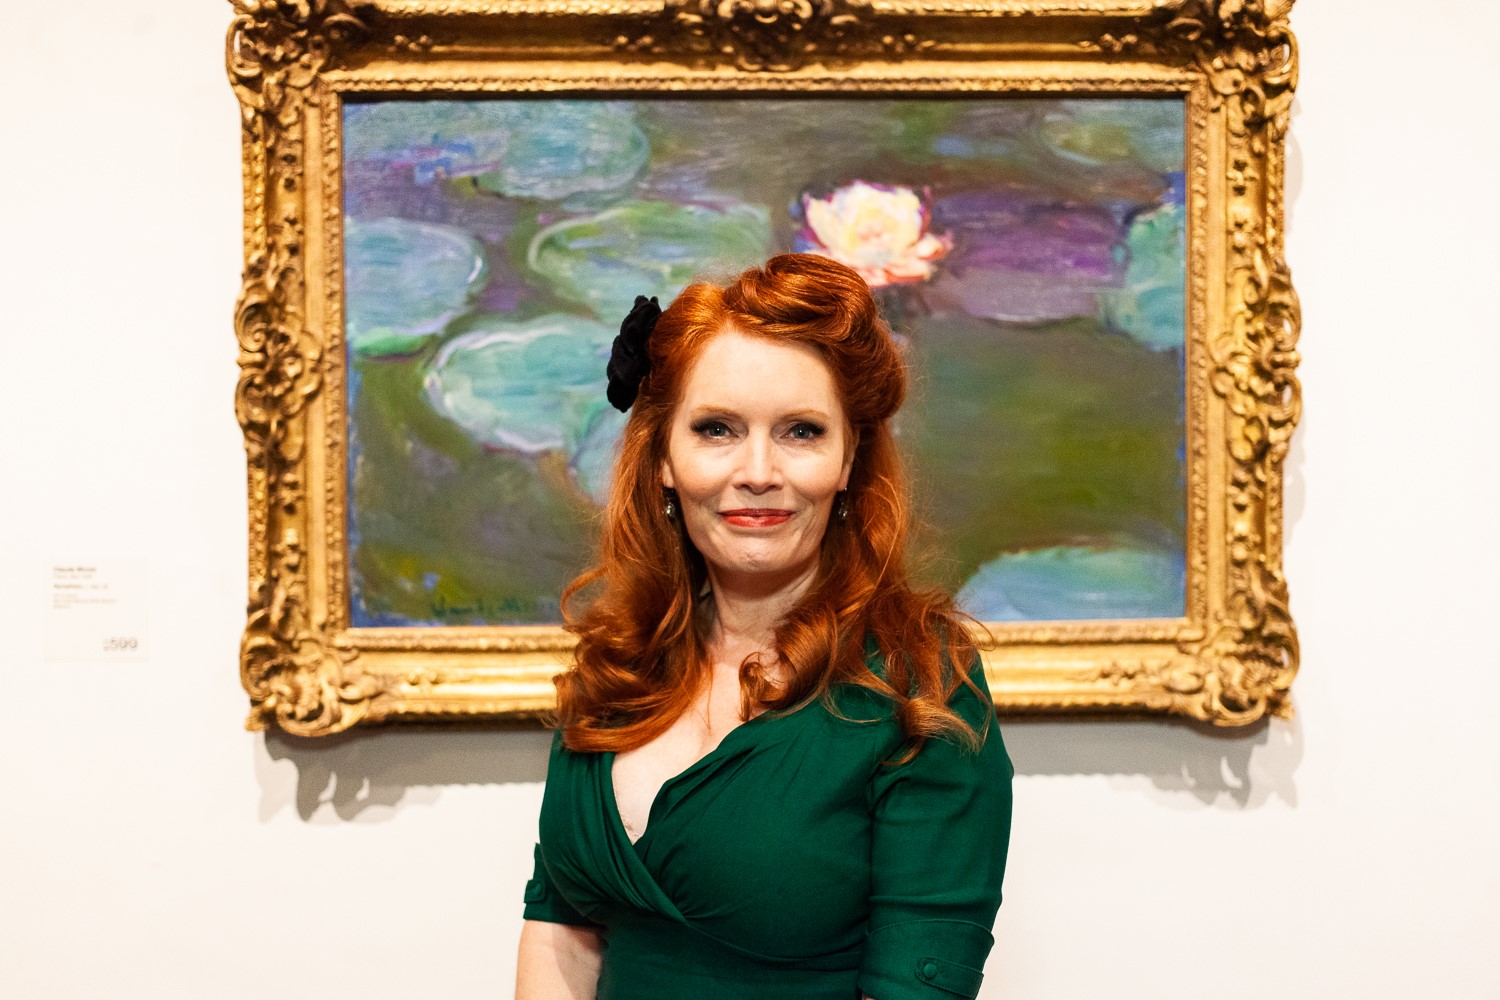 Woman standing in front of painting in a green dress with black flower in her hair